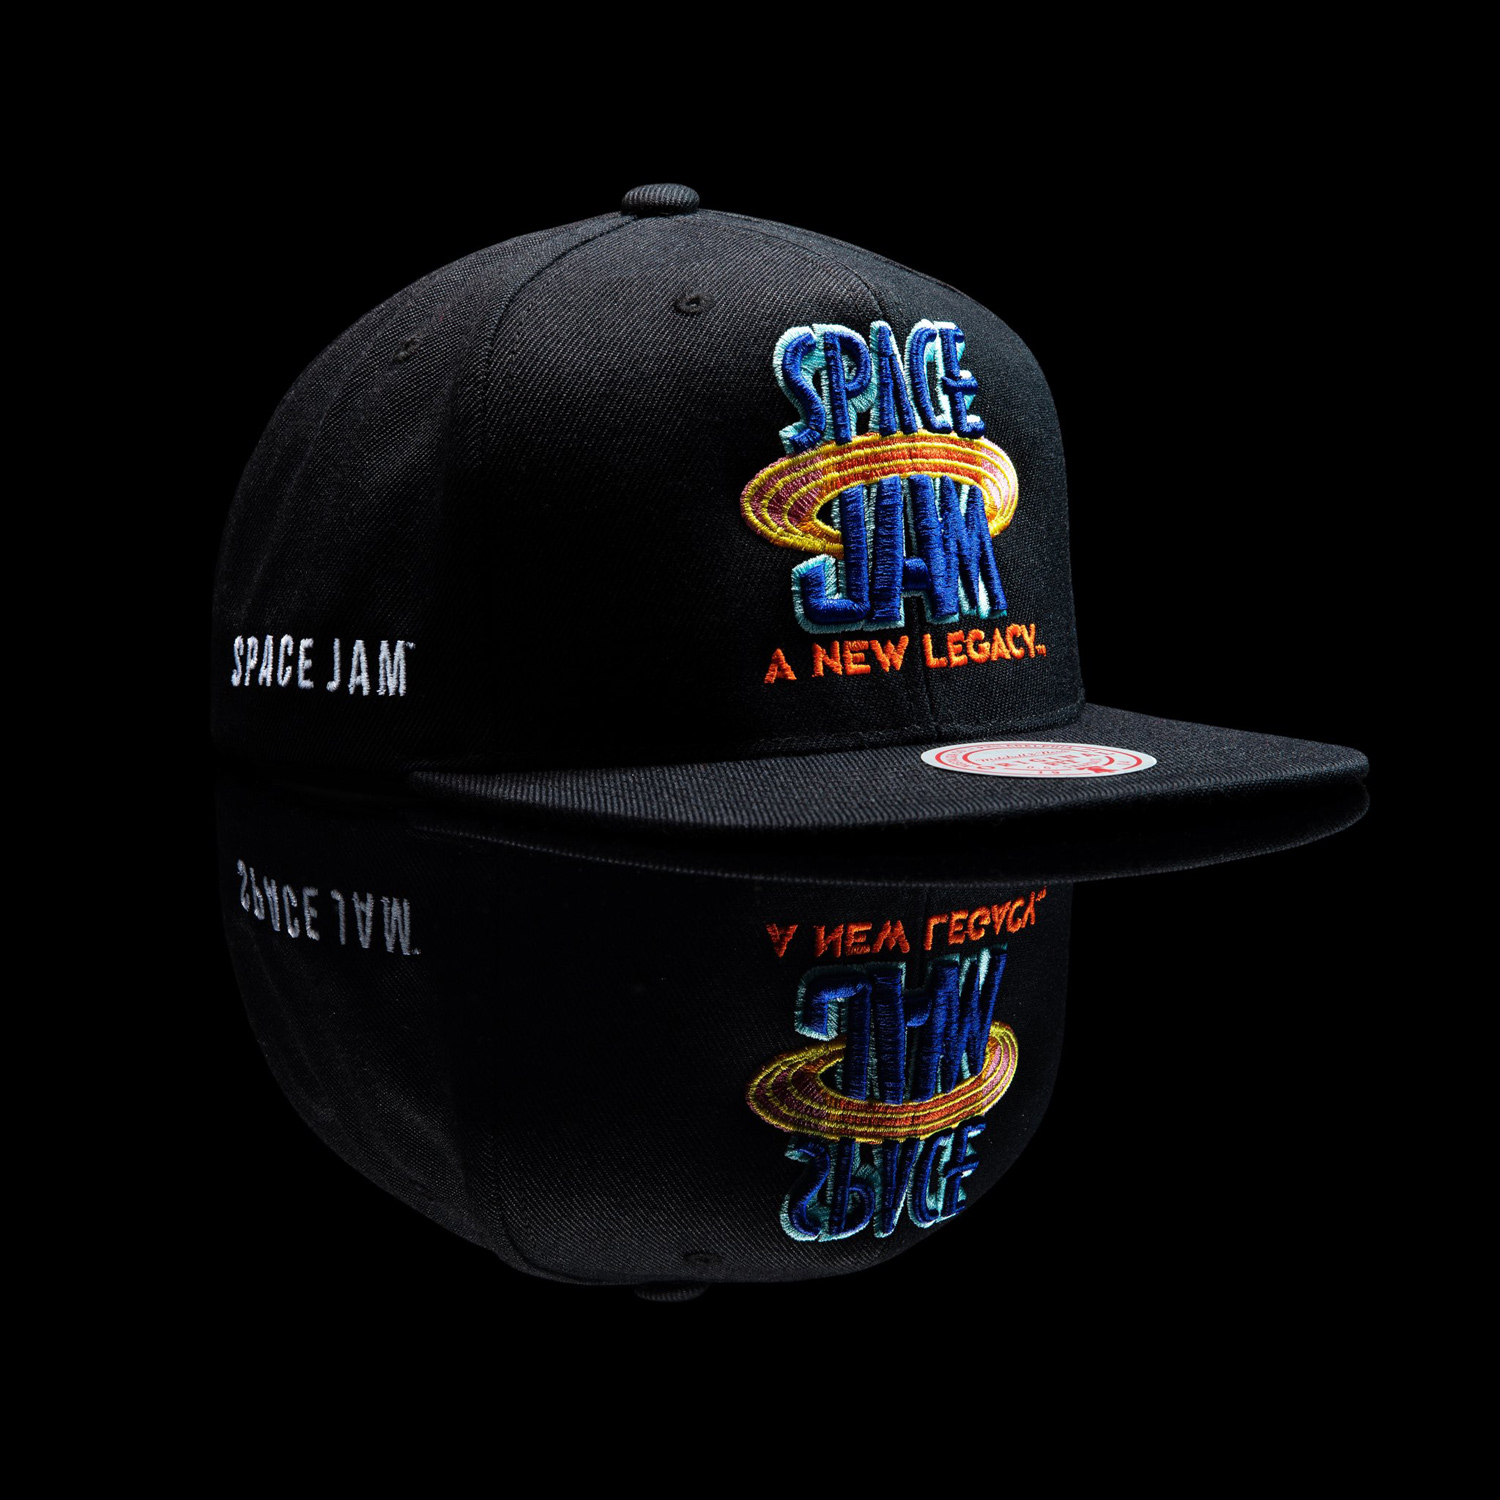 space-jam-a-new-legacy-hat-mitchell-and-ness